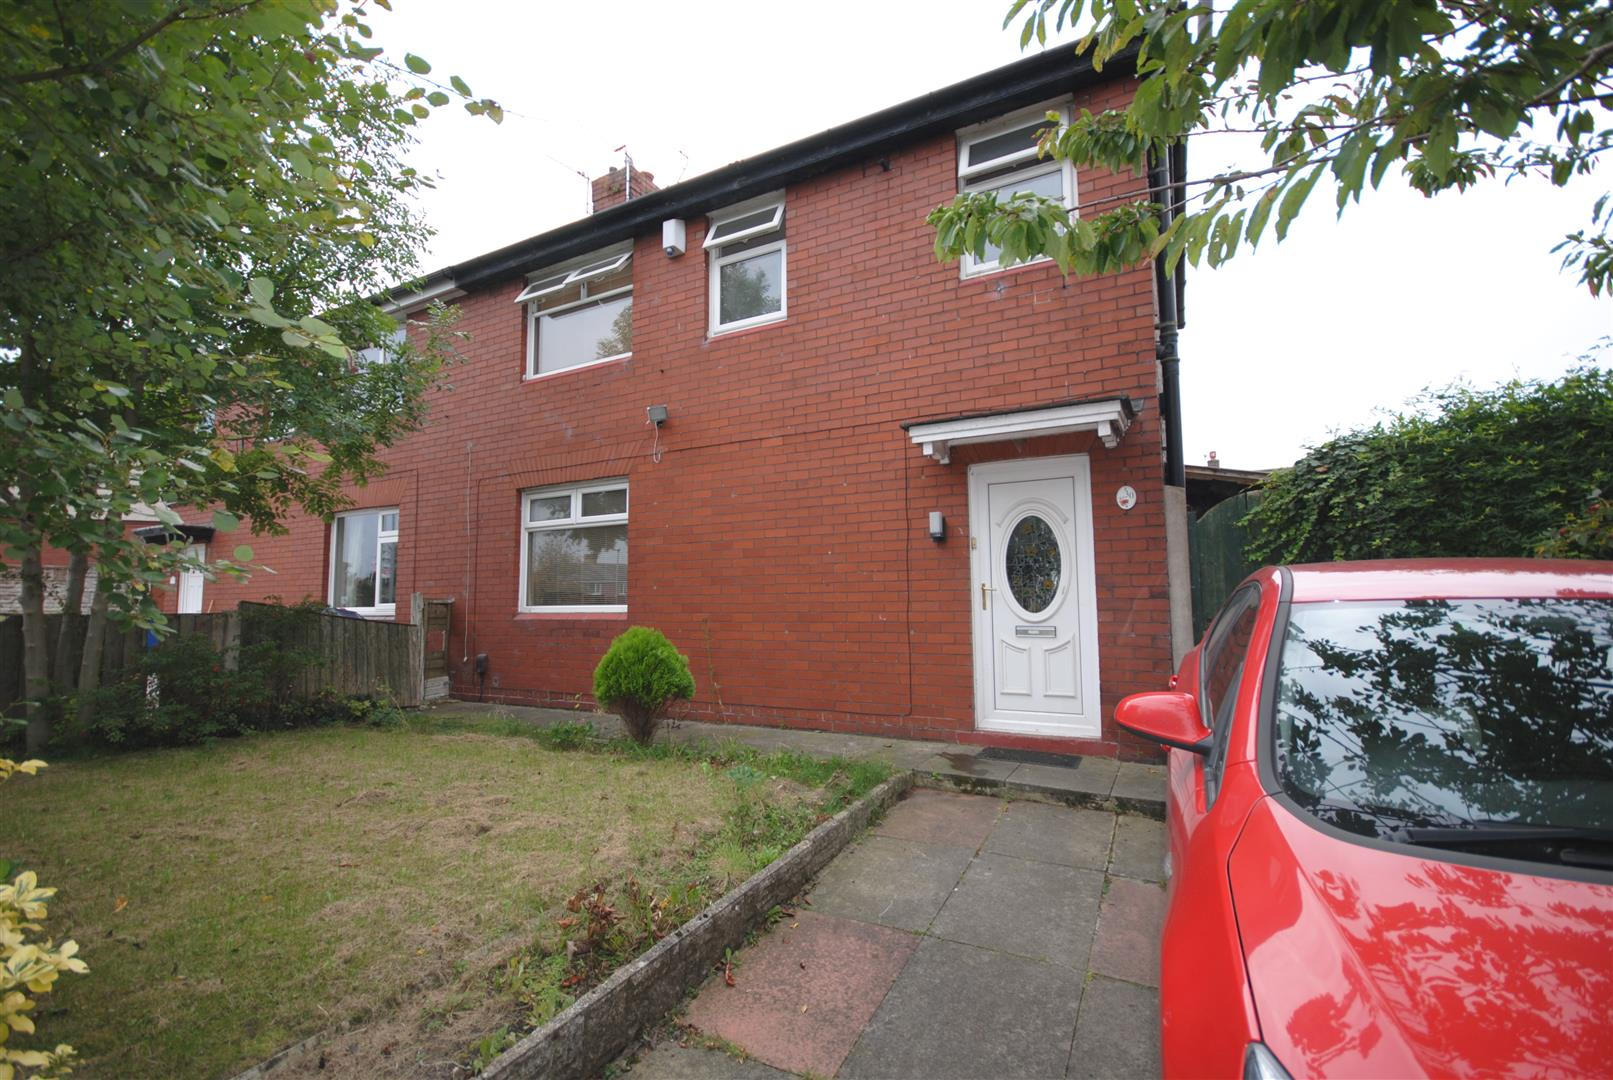 3 Bedrooms Semi Detached House for sale in Bluebell Avenue, Beech Hill. Wigan.